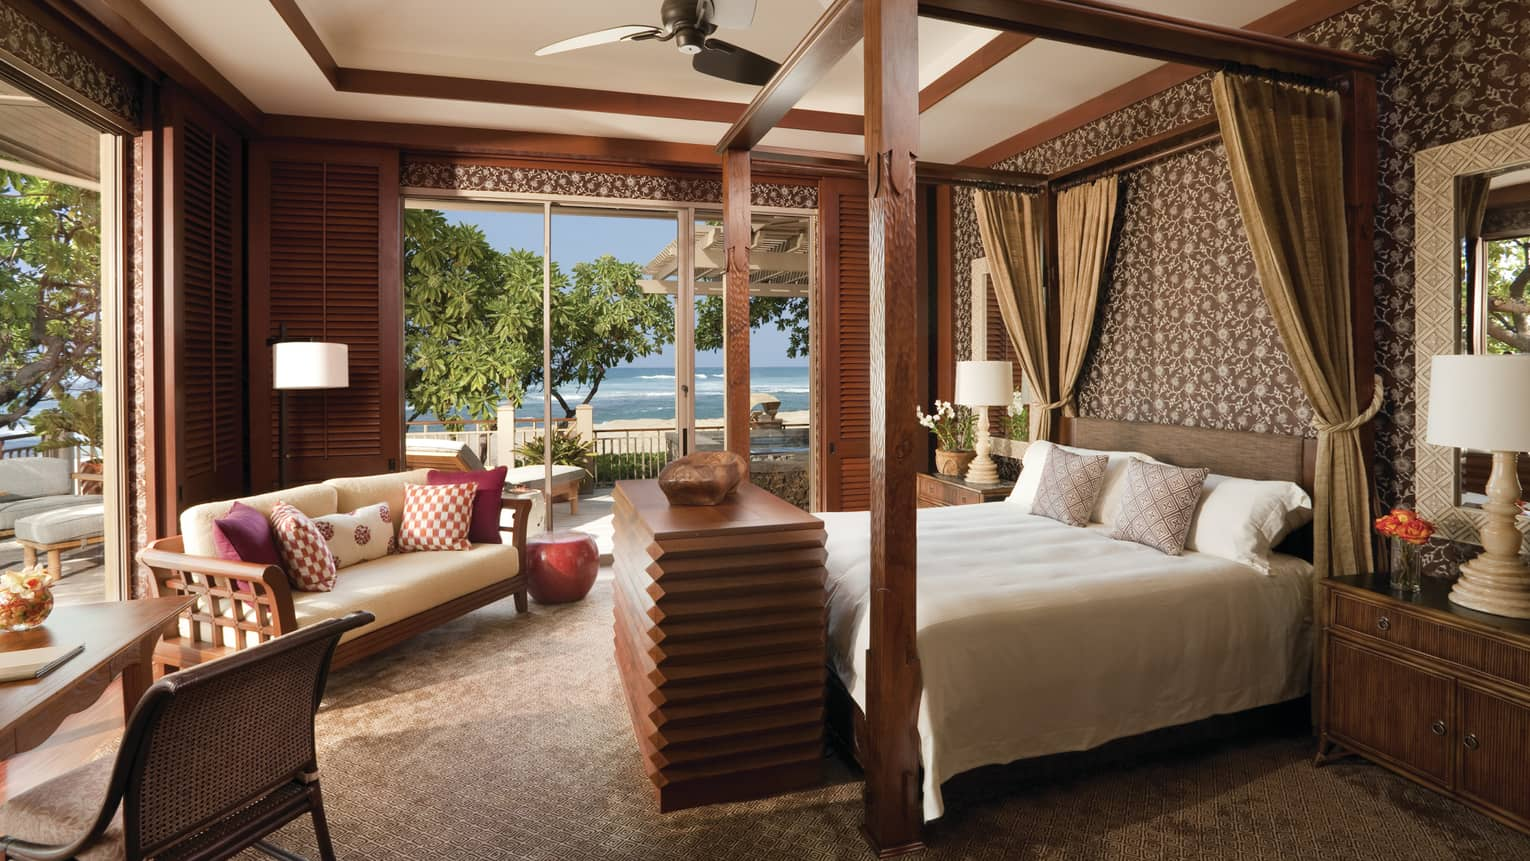 Hawaii Loa Presidential Villa sunny bedroom with wood poster bed, open walls